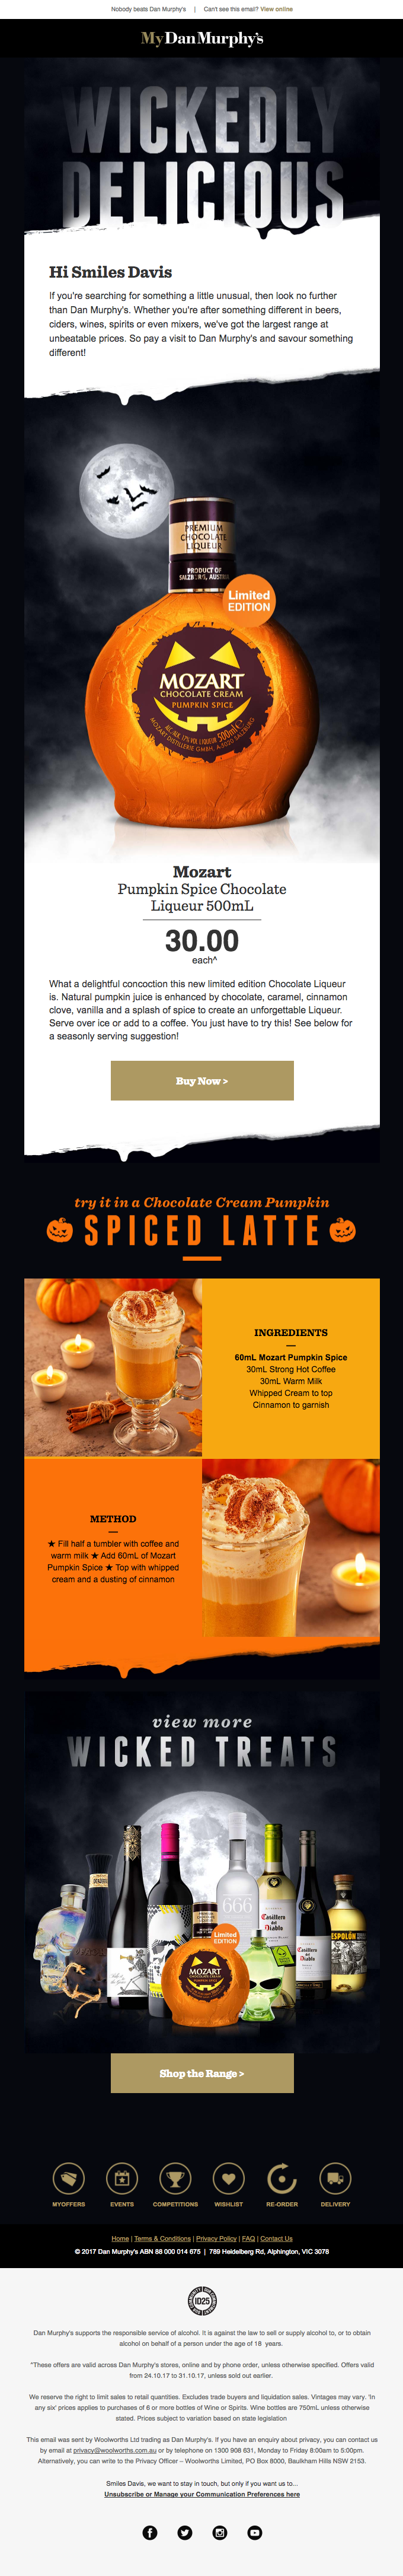 Hi Smiles Davis – 🎃 Treat yourself to Mozart's Chocolate Cream Pumpkin Spice Liqueur, at the lowest price!